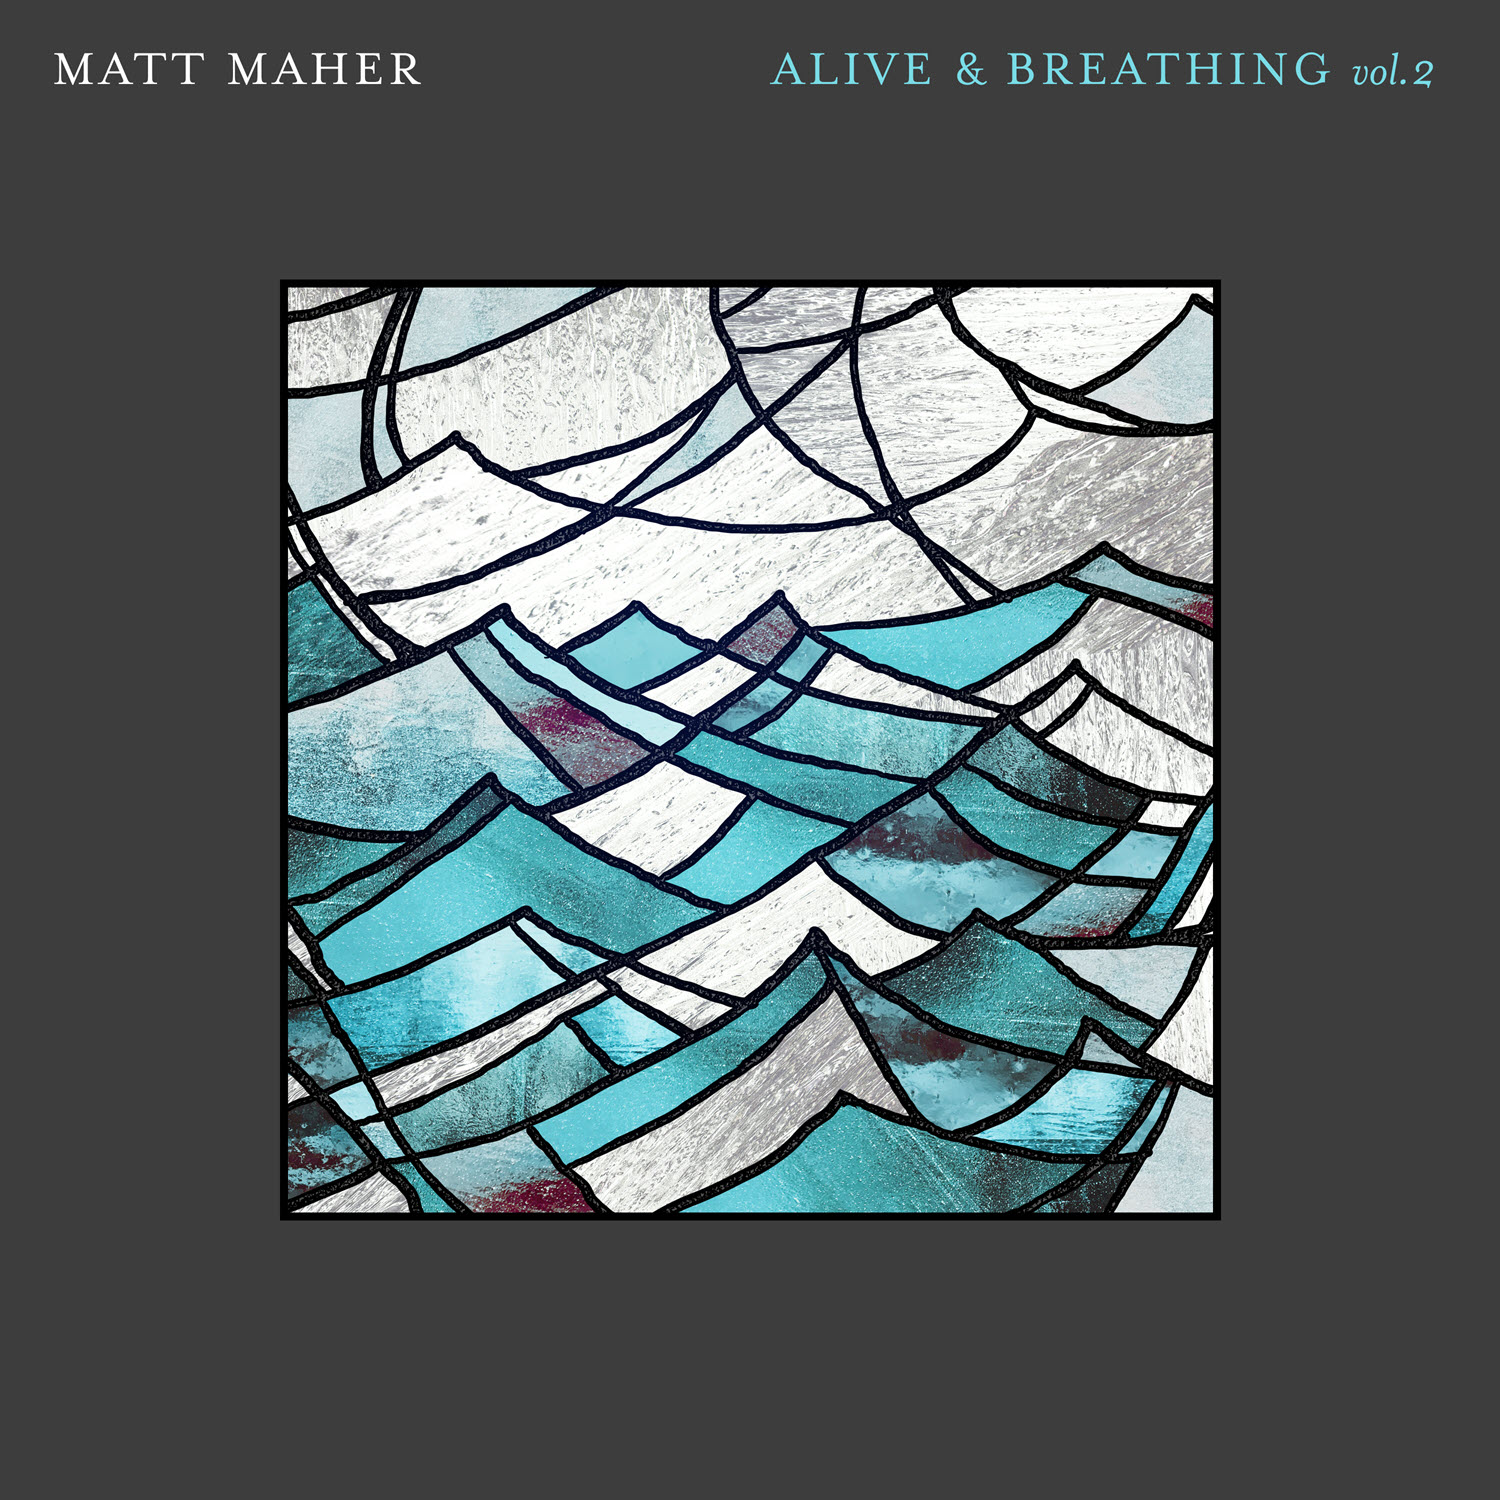 Alive & Breathing (Vol. 2)